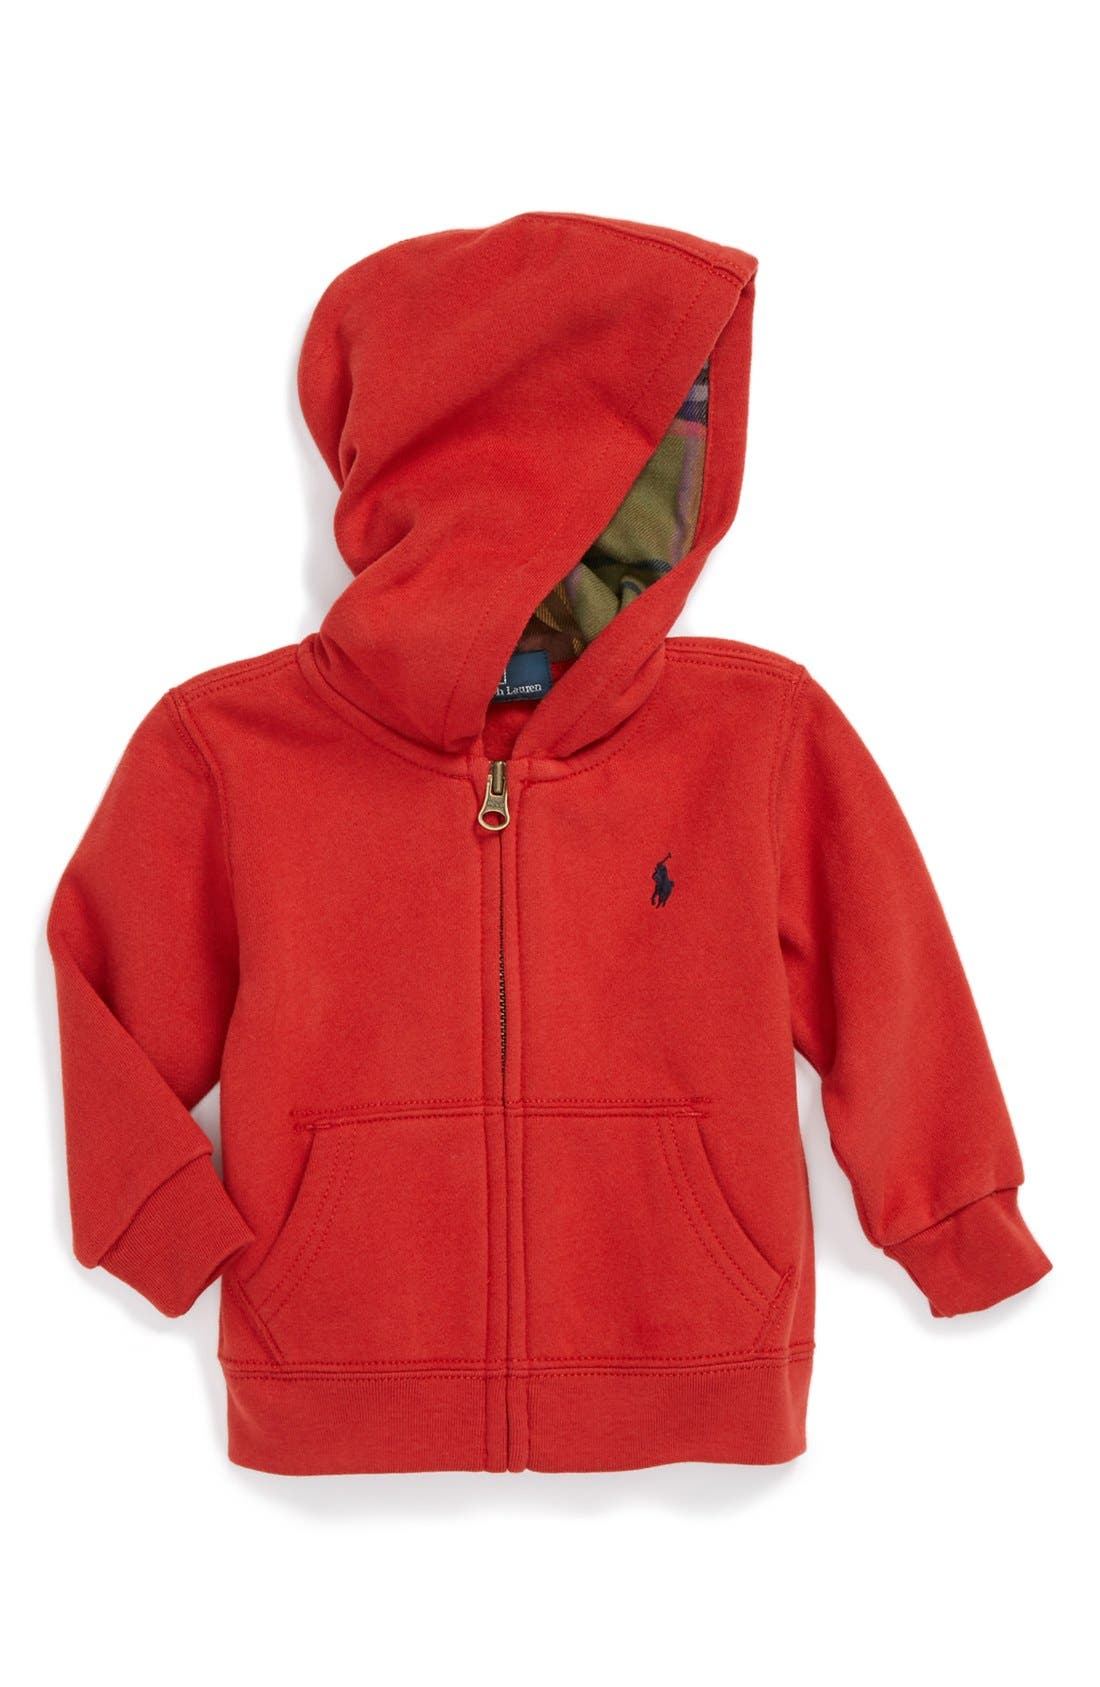 Alternate Image 1 Selected - Ralph Lauren Hoodie (Baby Boys)